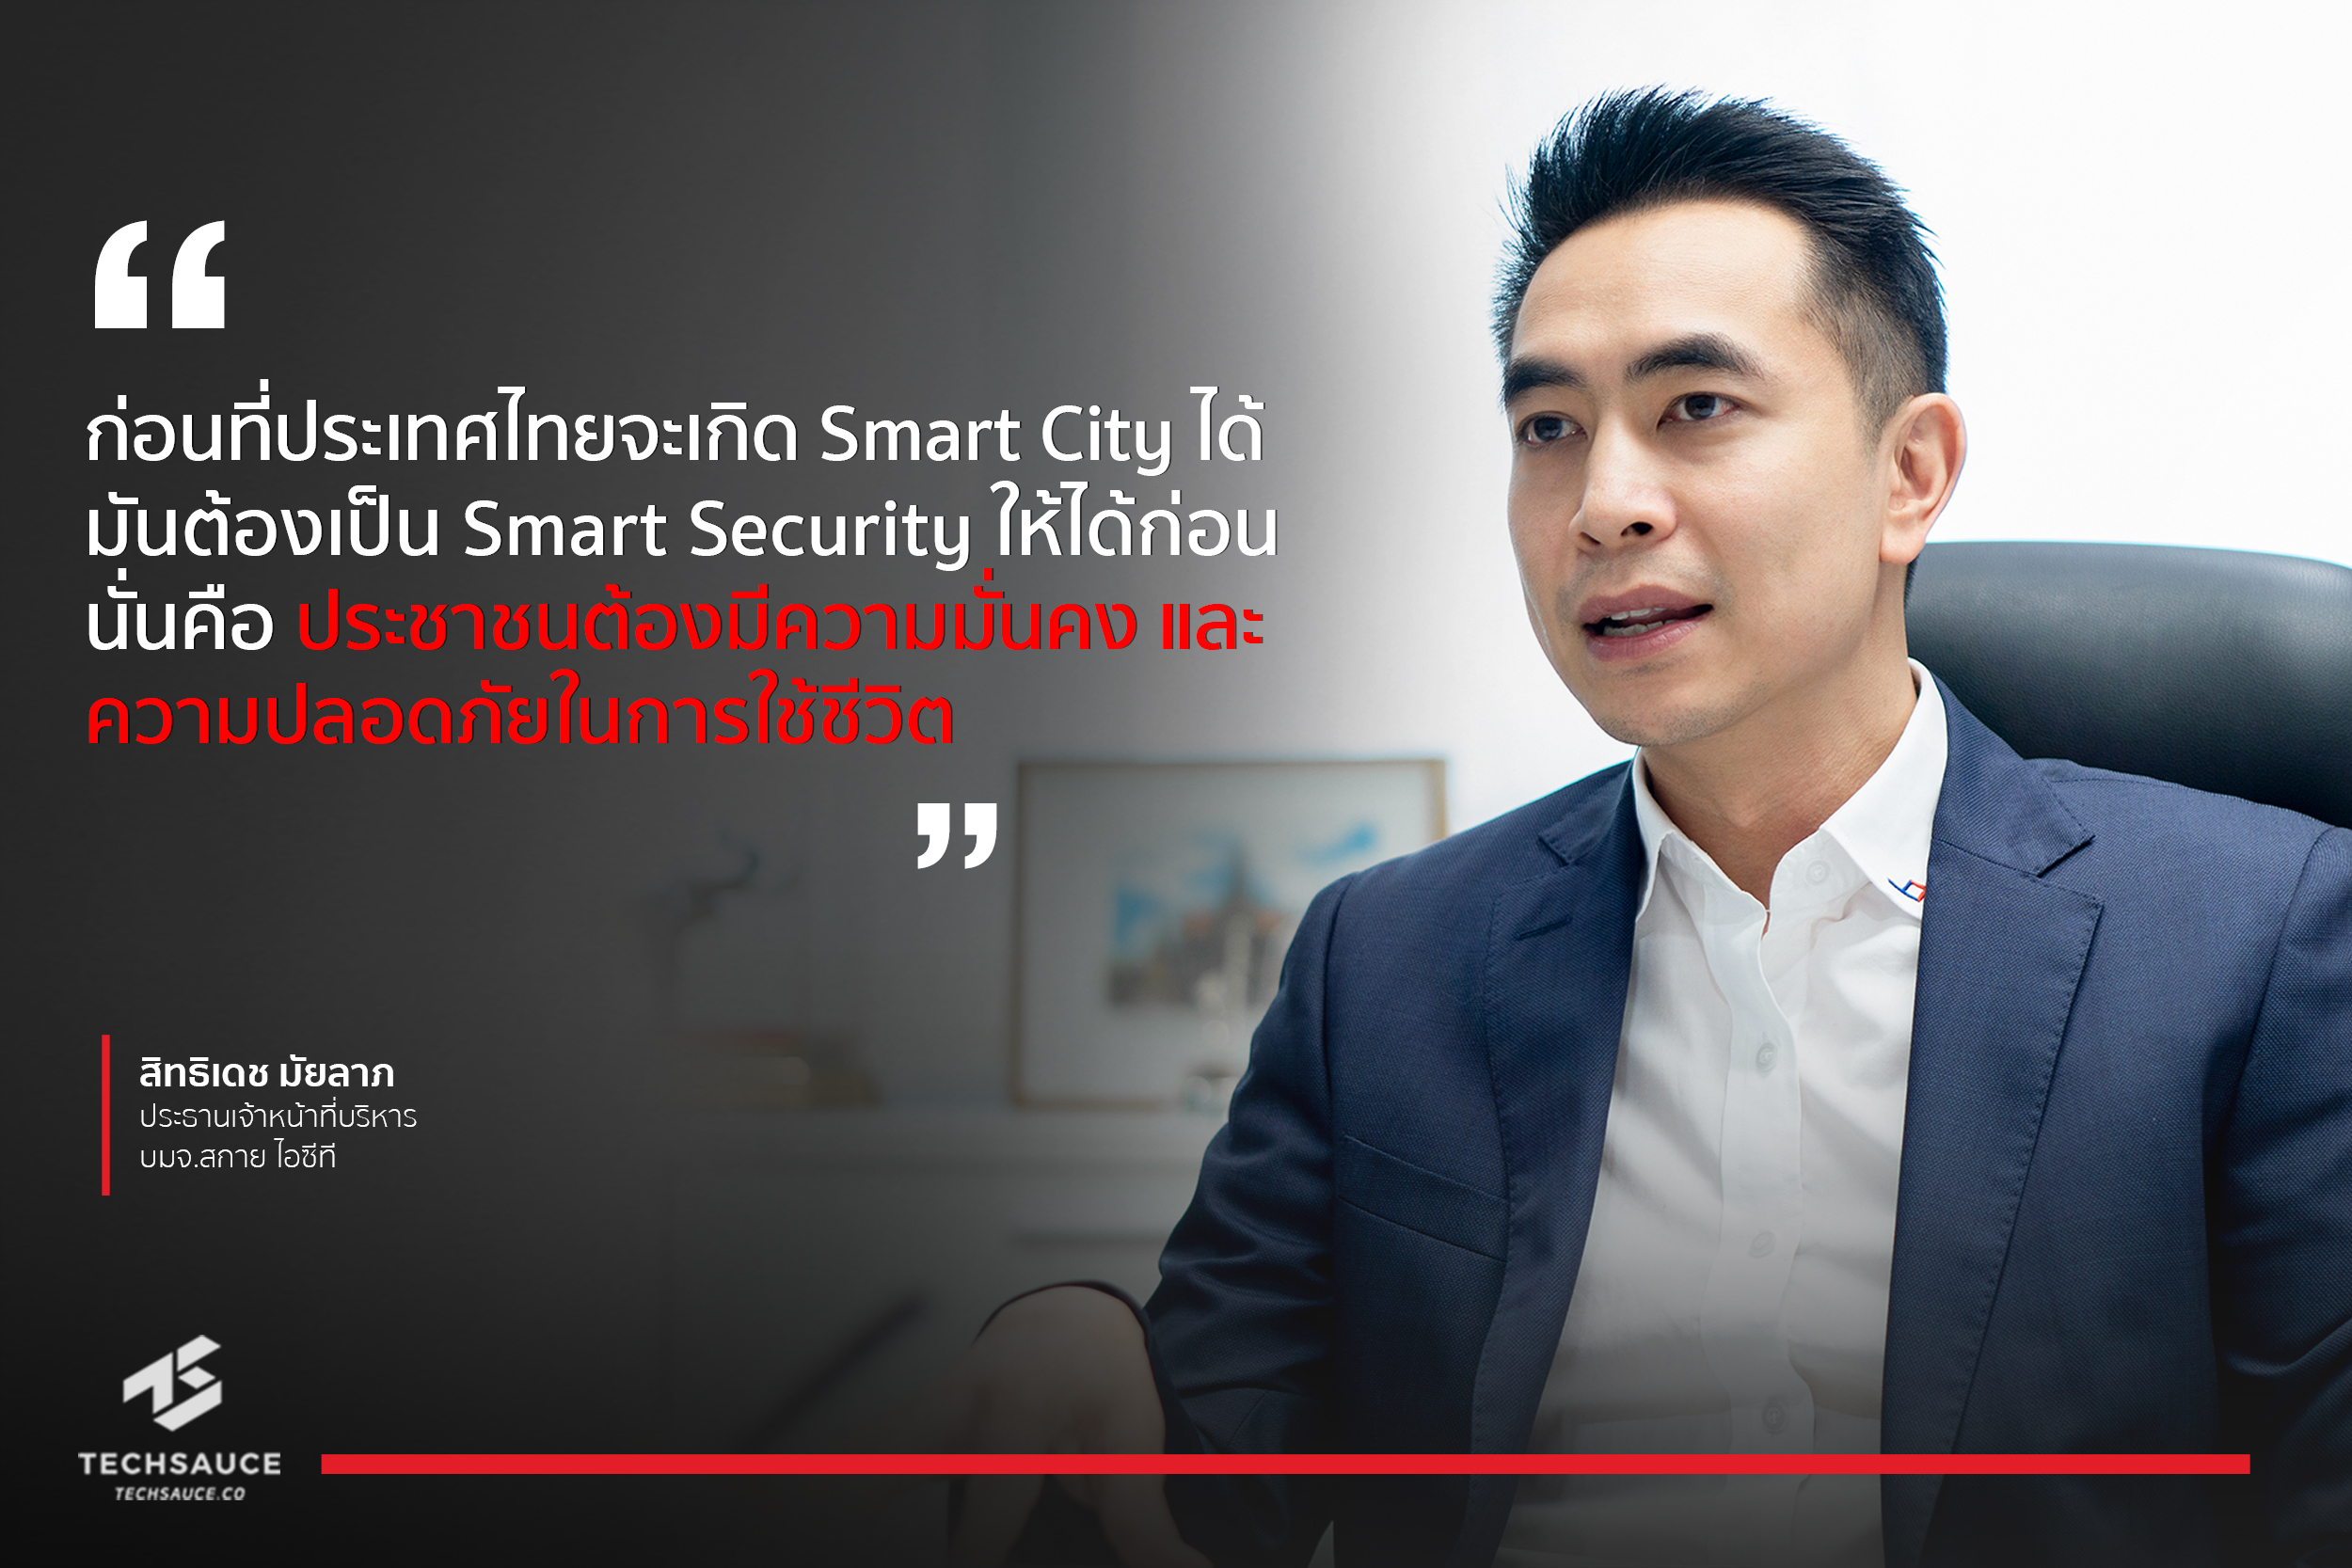 Smart security-SKY ICT